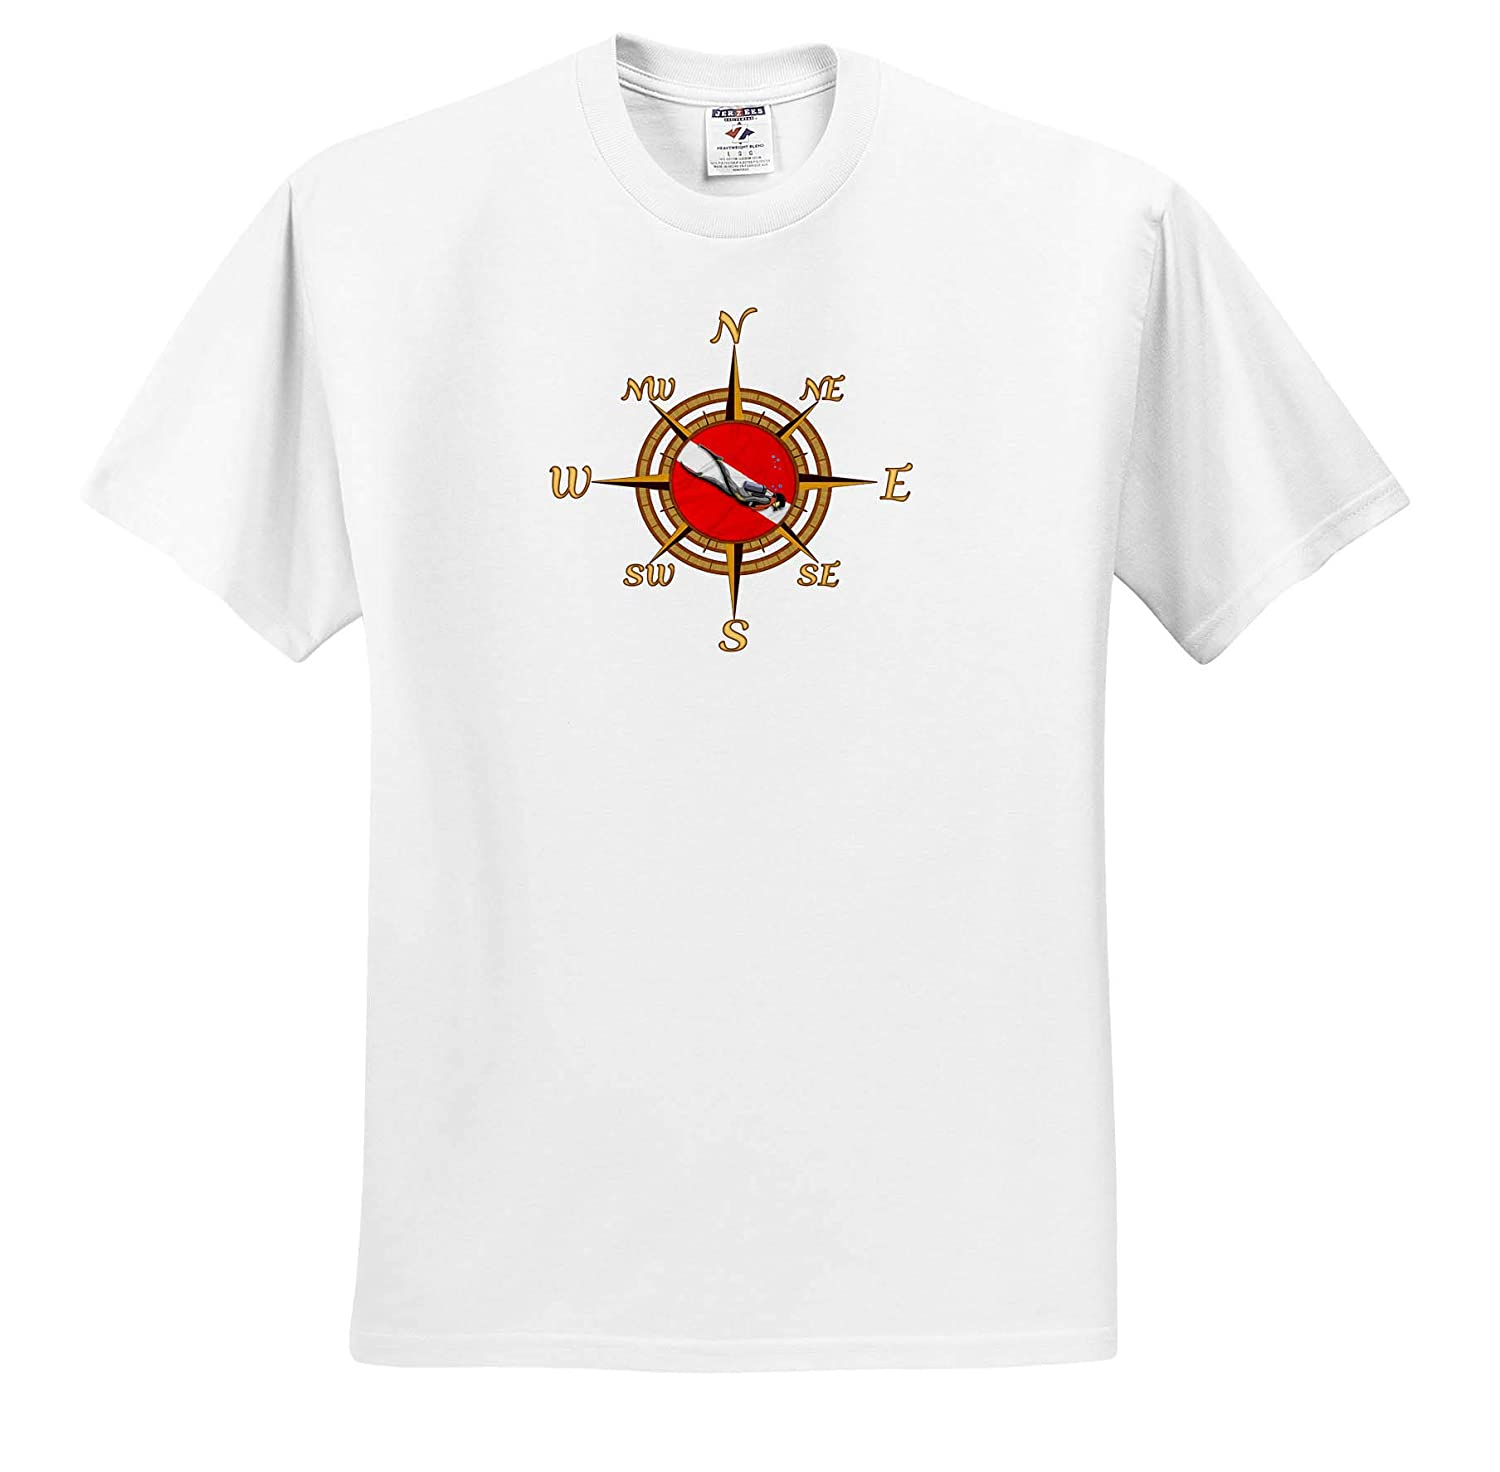 3dRose Macdonald Creative Studios Scuba Classic Compass Rose with a Scuba Diver and Dive Flag in The Center - T-Shirts